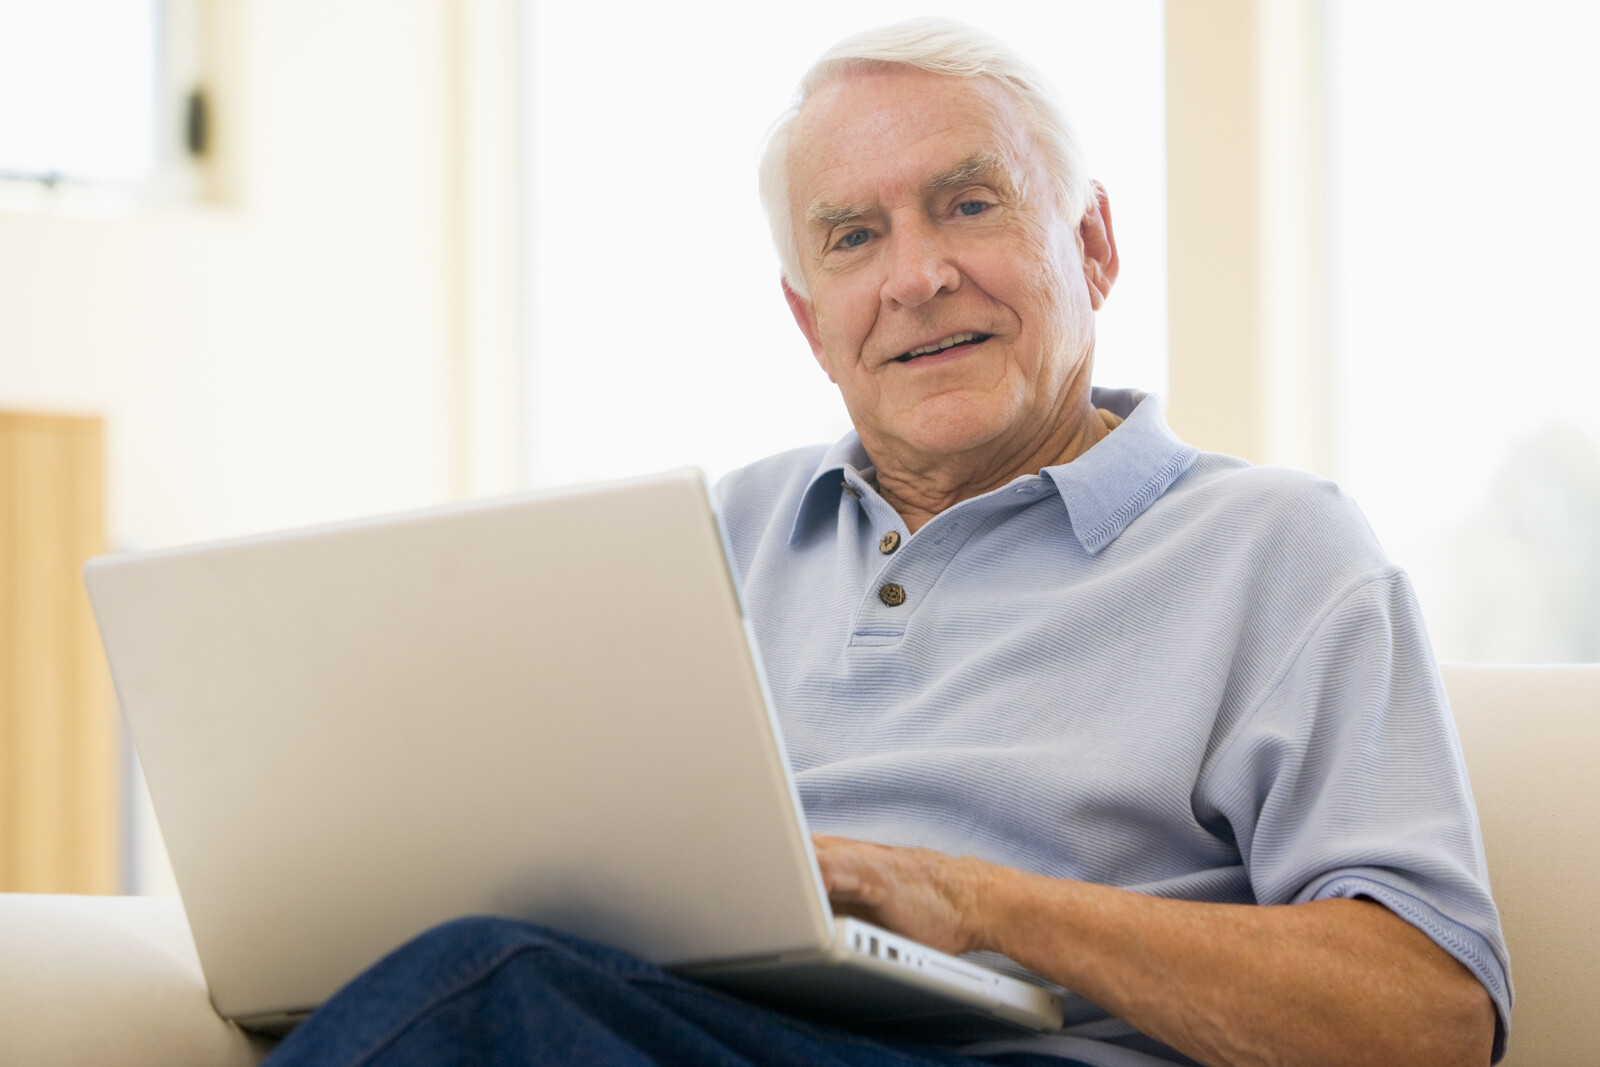 Senior man looking into the camera with a laptop on his lap sitting on  couch